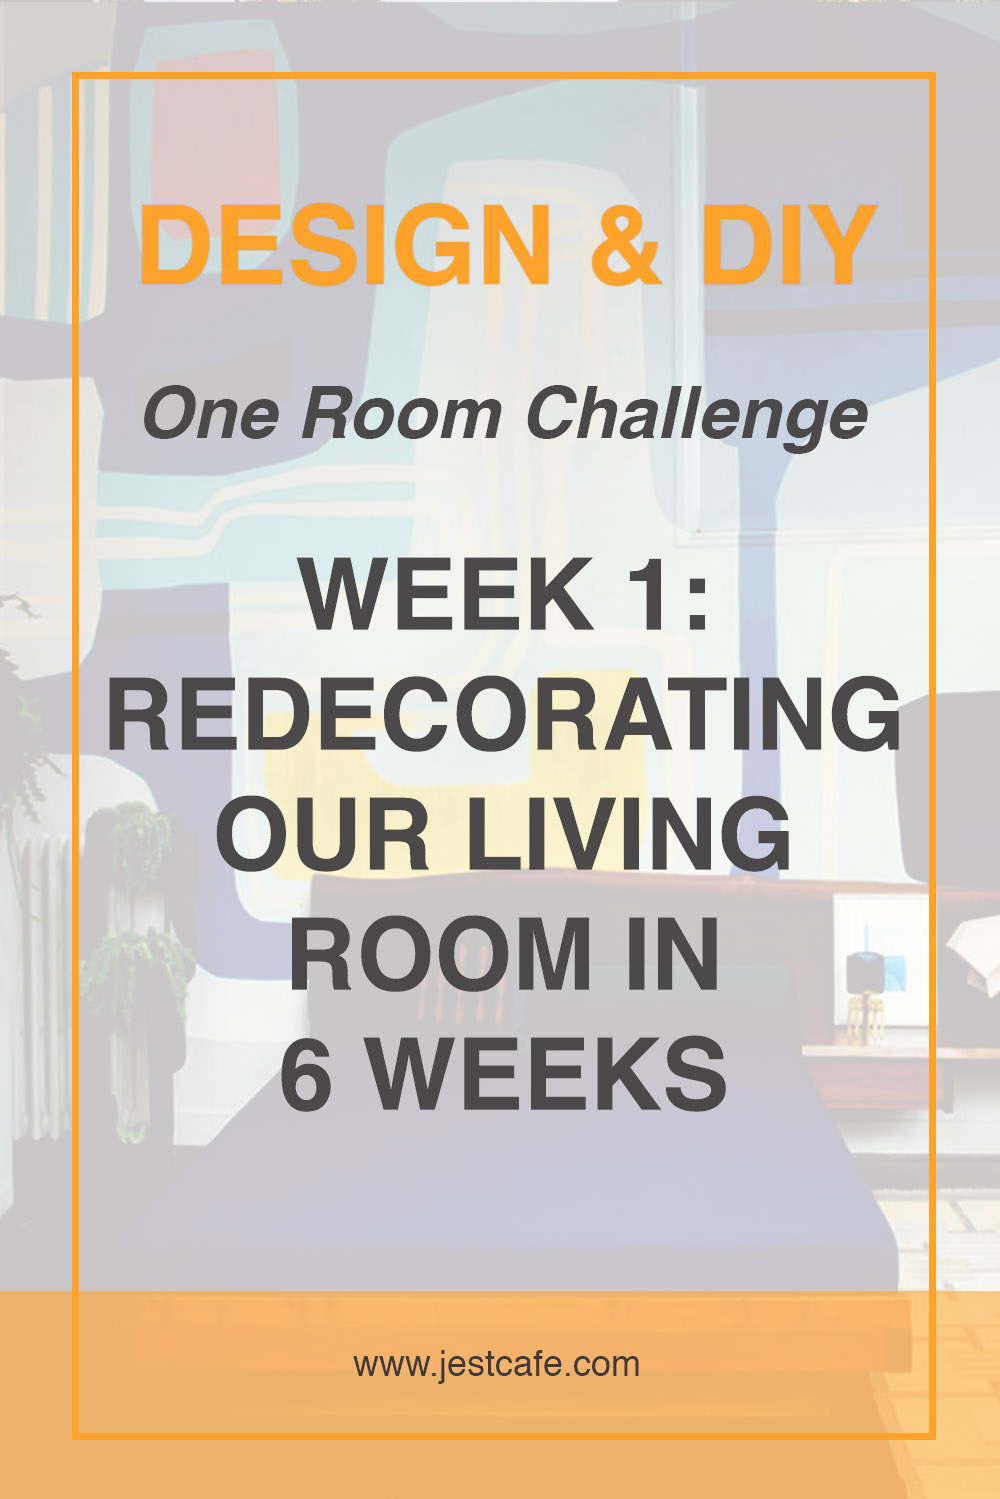 One Room Challenge Our Living Room Jest Cafe